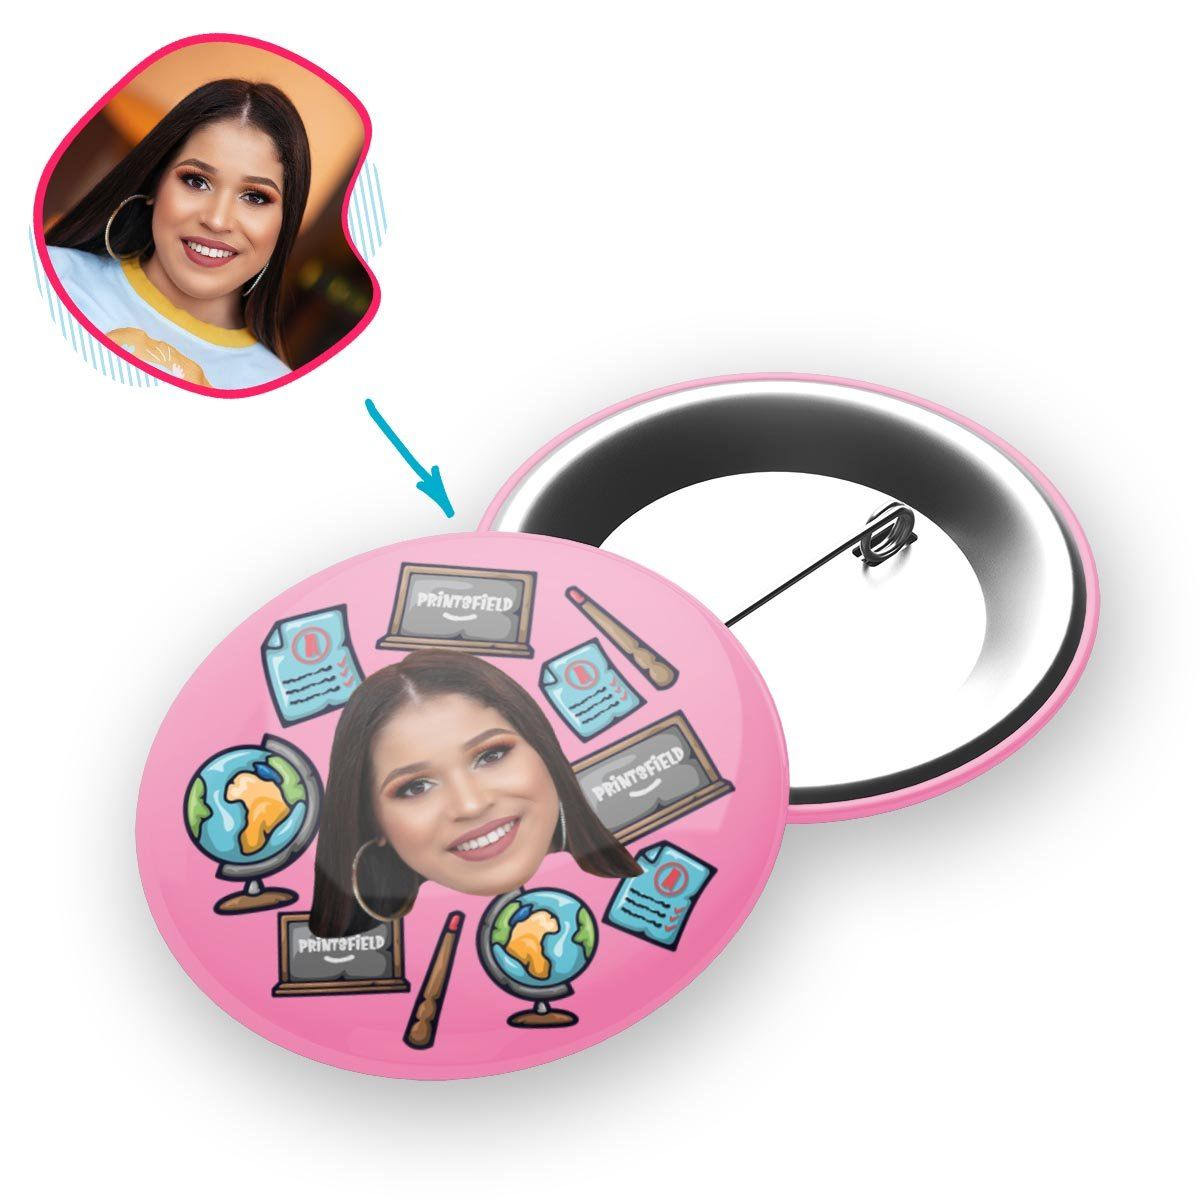 Pink Teacher personalized pin with photo of face printed on it